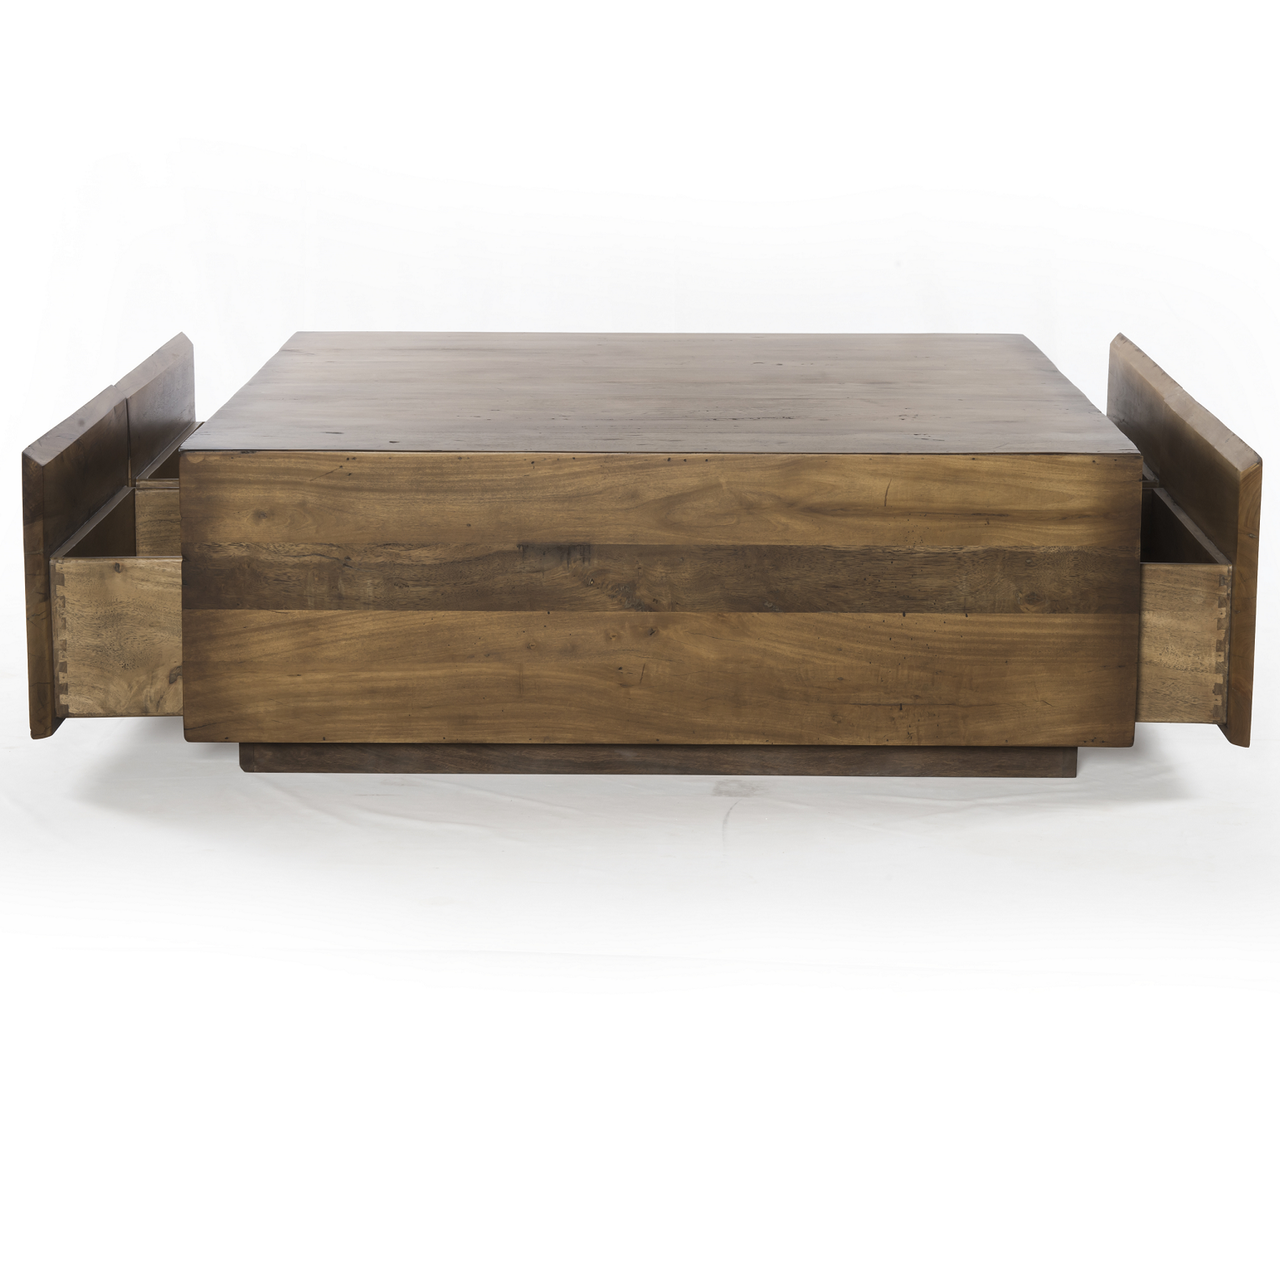 Duncan Reclaimed Wood Square Storage Coffee Table images